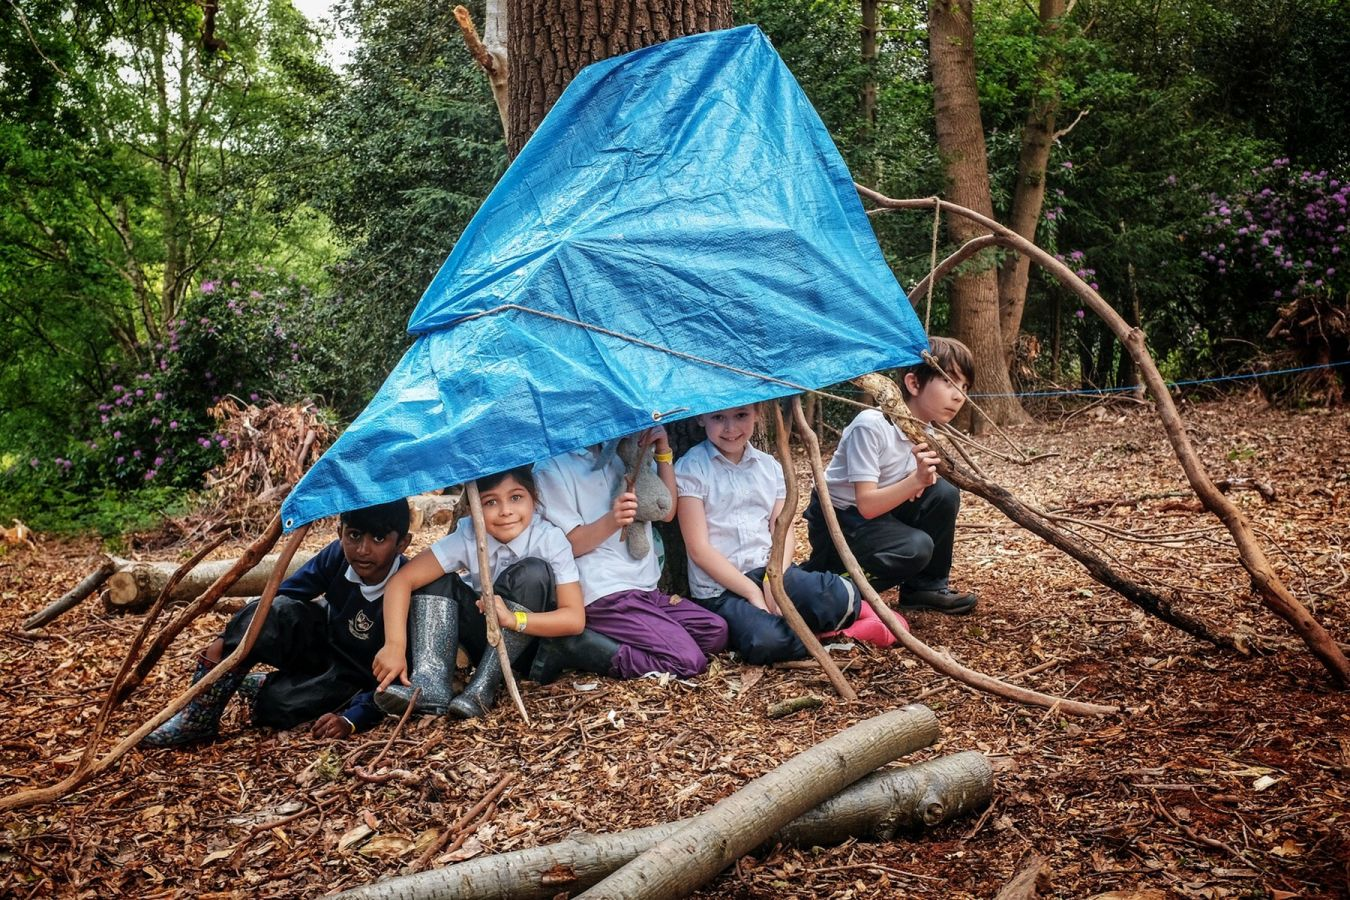 The pupils also learned how to create shelters using woodland material and tarpaulin.